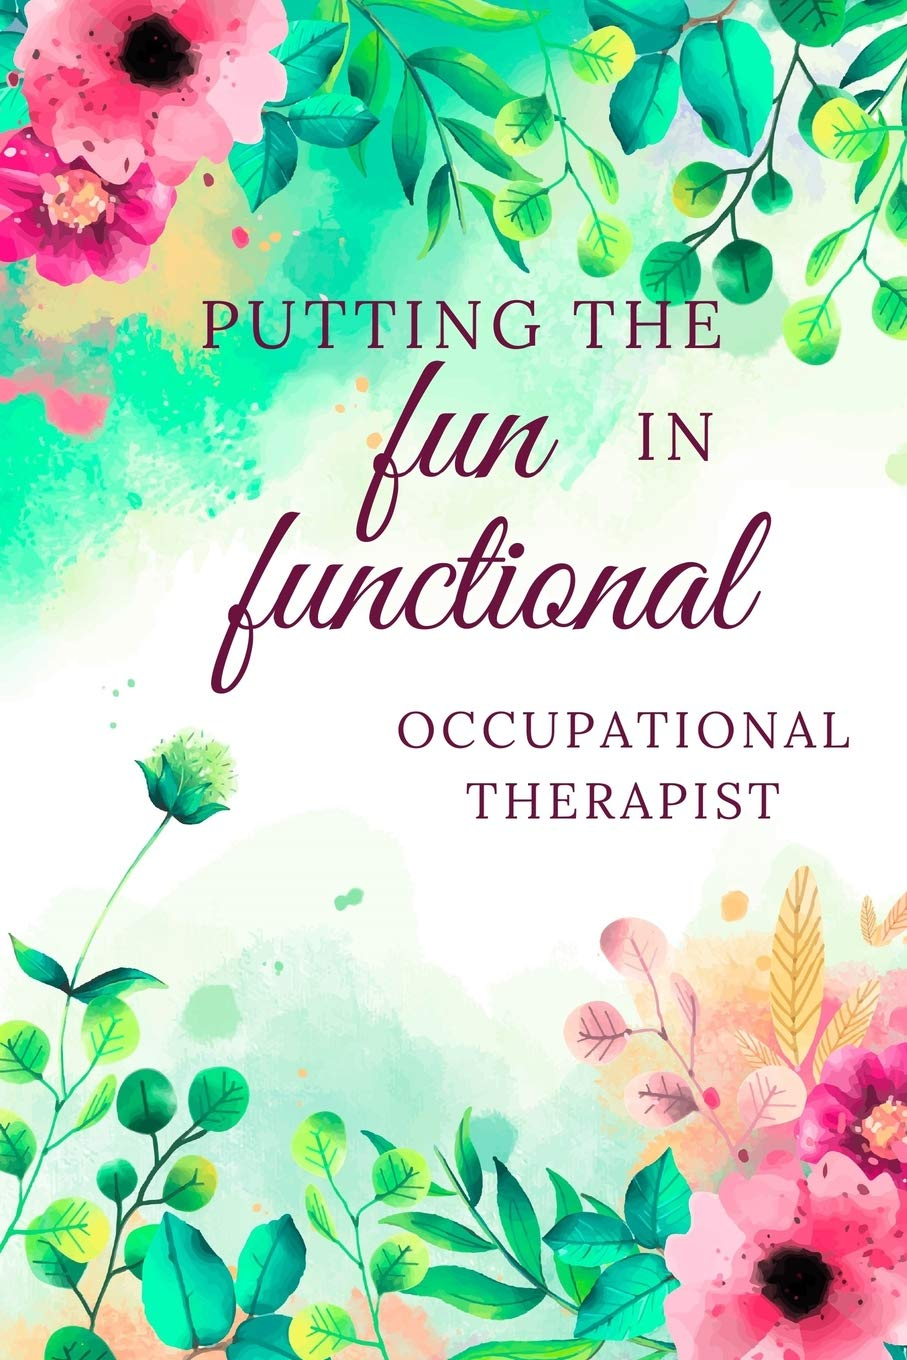 Occupational Therapist Journal Occupational Therapy Notebook Occupational Therapy Gifts Planning Occupational Therapist Gifts Ot Gifts 6 X 9 Lined Notebook 120 Pages Publishing Almond Tree 9781072235699 Amazon Com Books